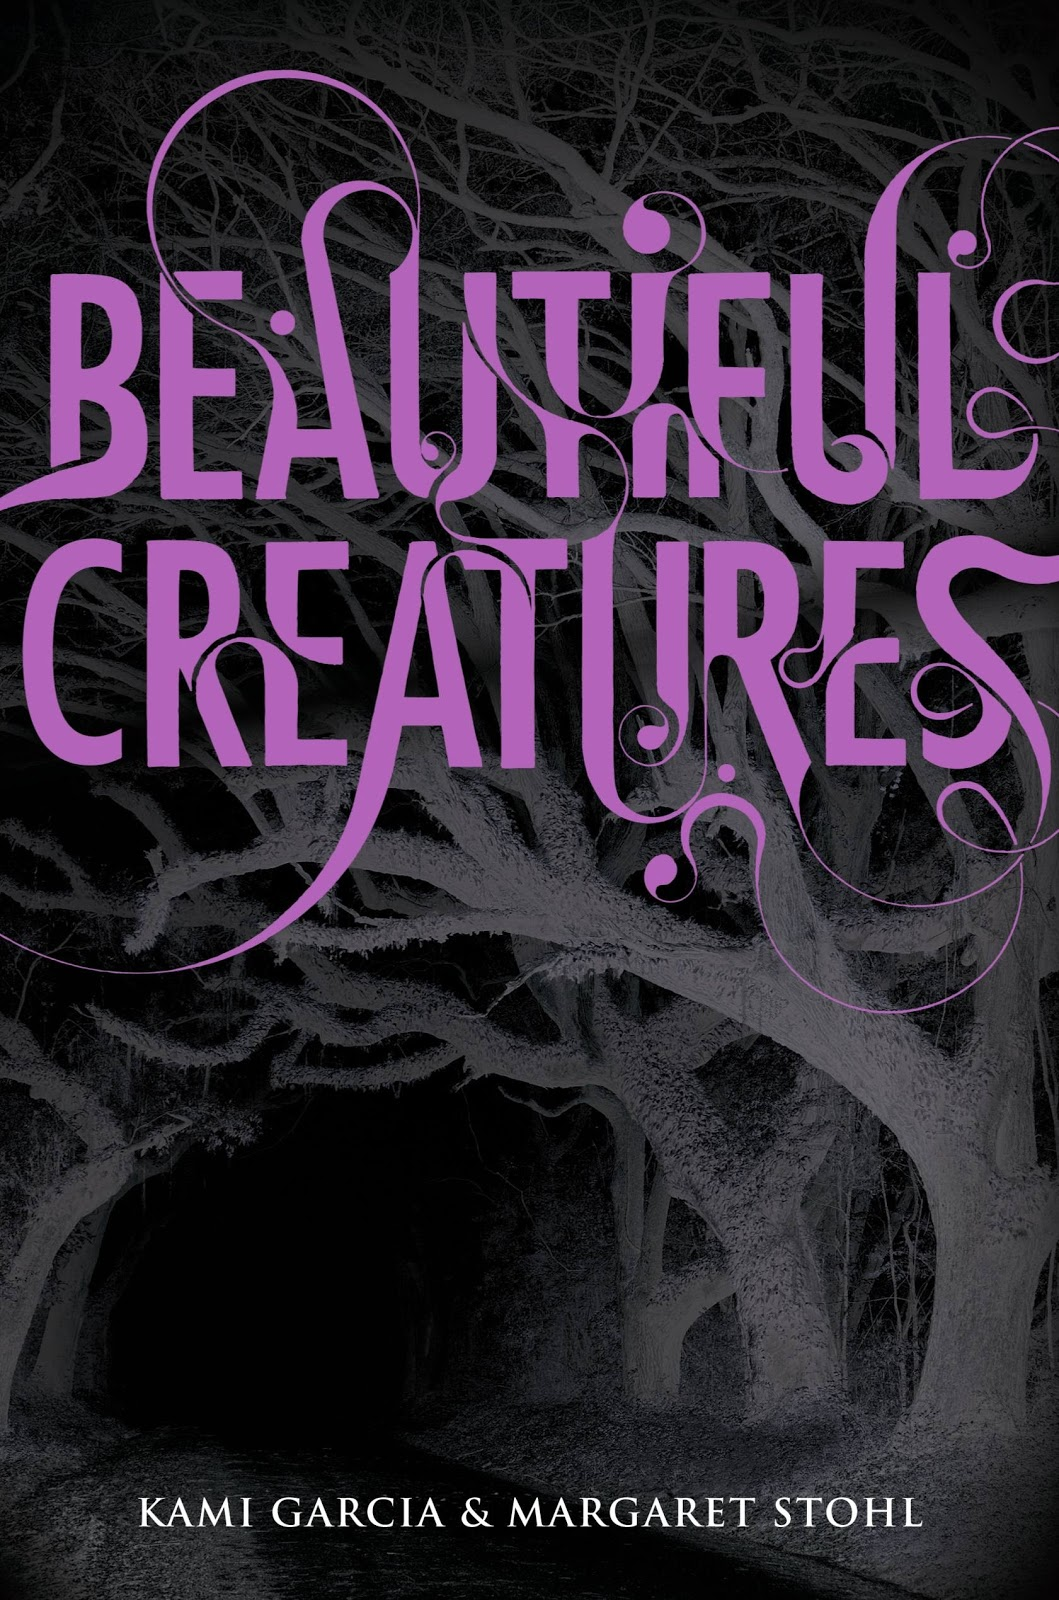 Pretty Book Cover Quote : Down the rabbit hole book review beautiful creatures by